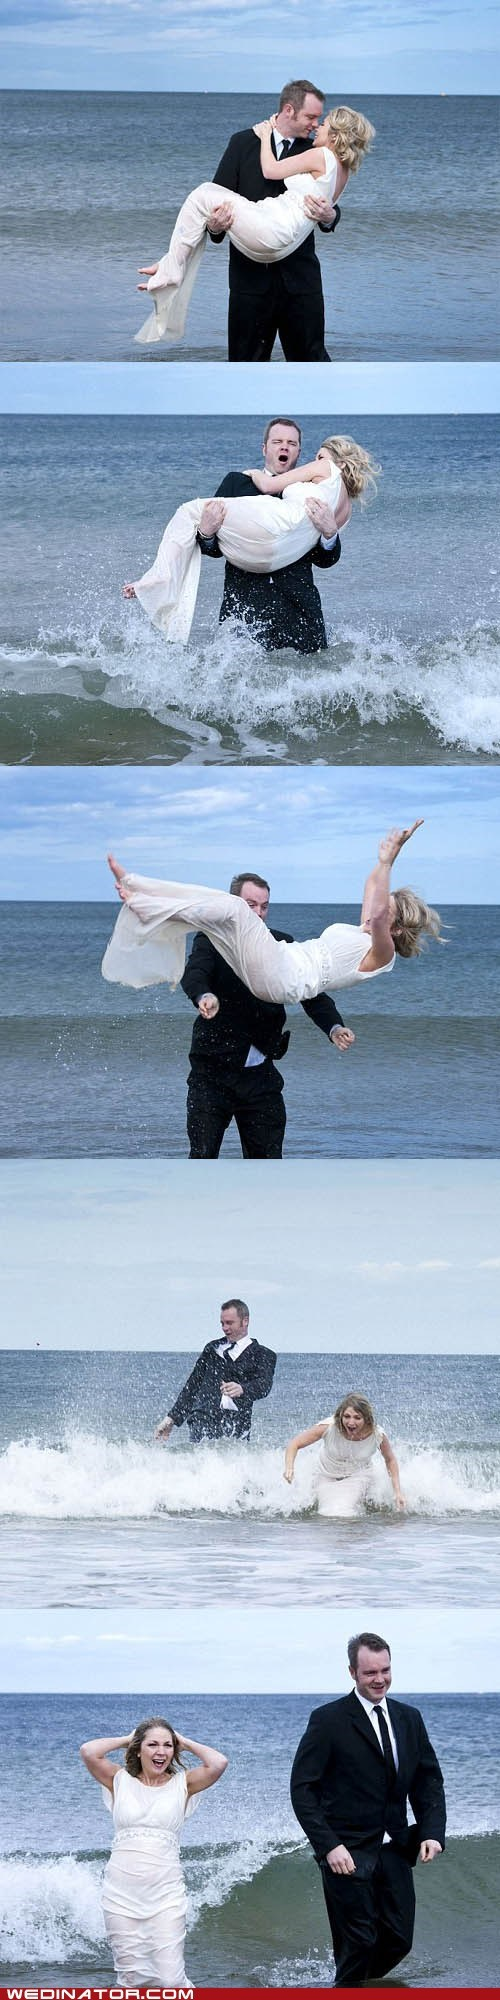 bride,drop,funny wedding photos,groom,North Sea,ocean,underwater